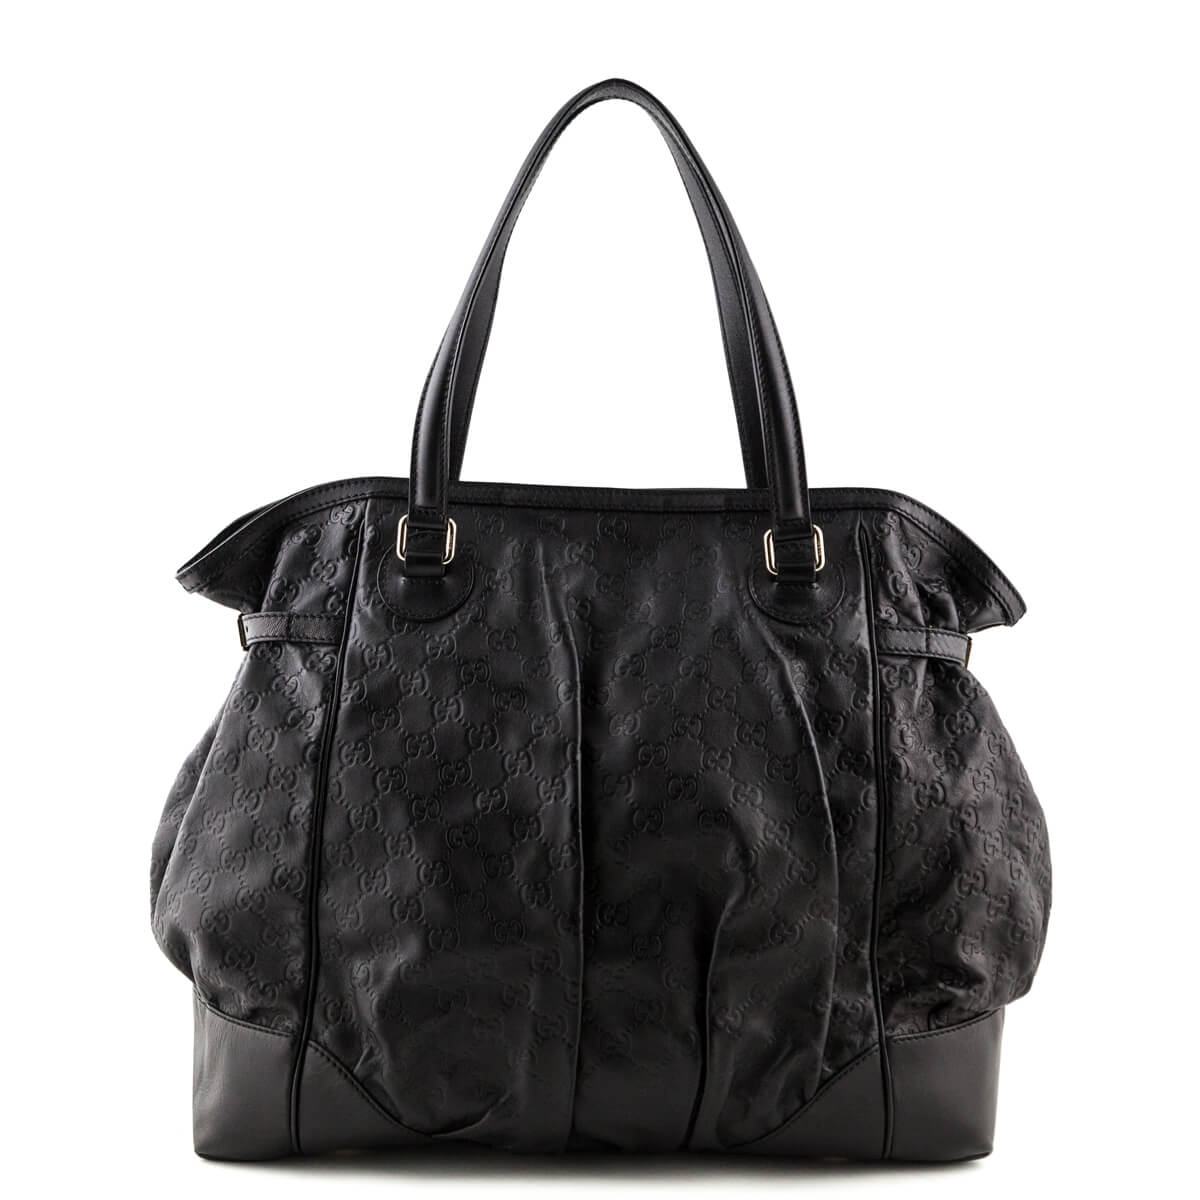 a36cd8297d3b4 Gucci Black Guccissima Large Full Moon Tote - LOVE that BAG - Preowned  Authentic Designer Handbags ...